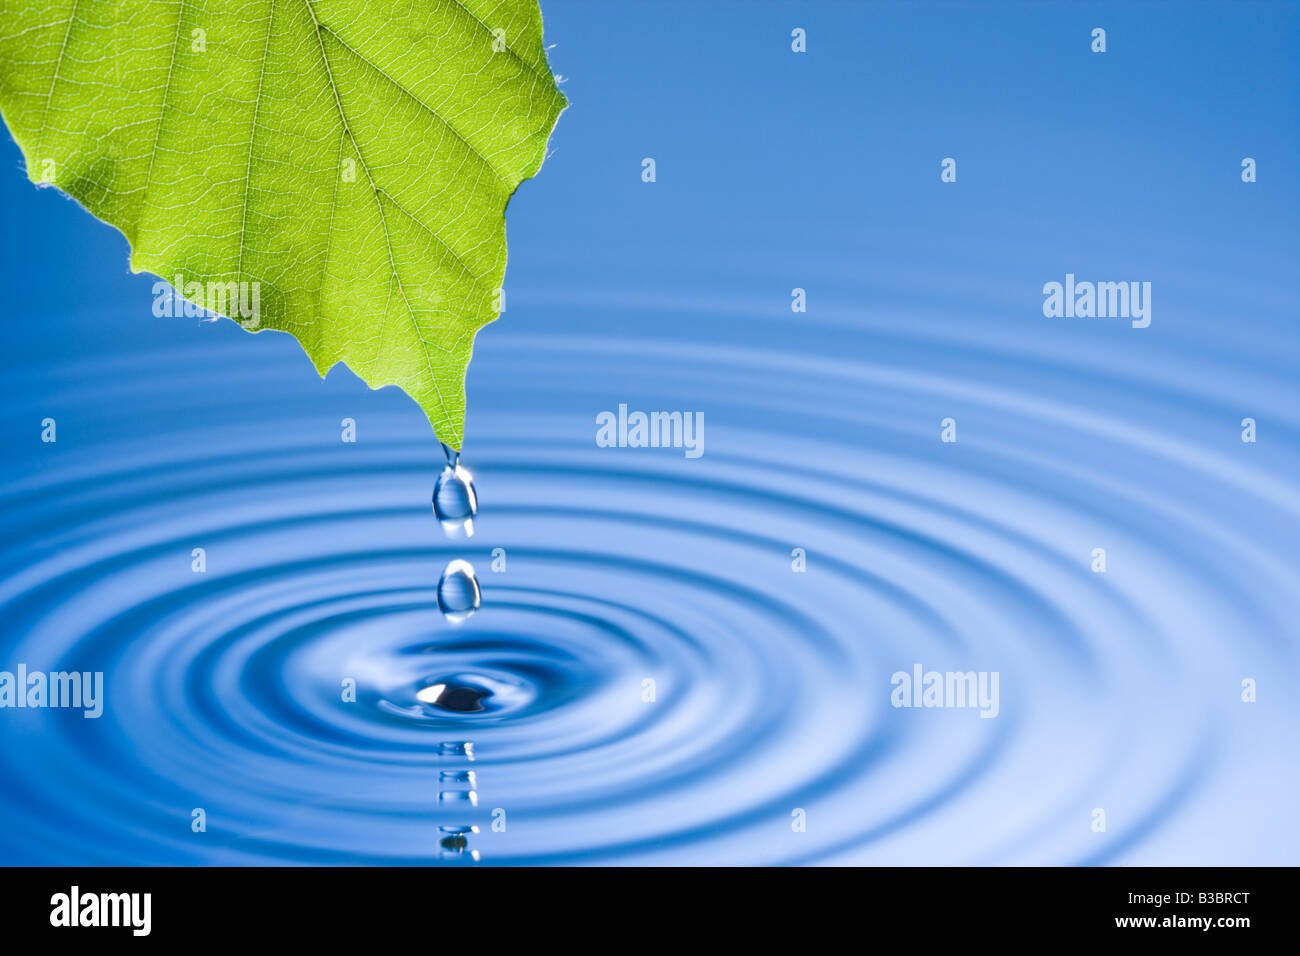 Falling Water Hd Wallpaper Water Droplets Falling From Leaf Causing Ripples Beech